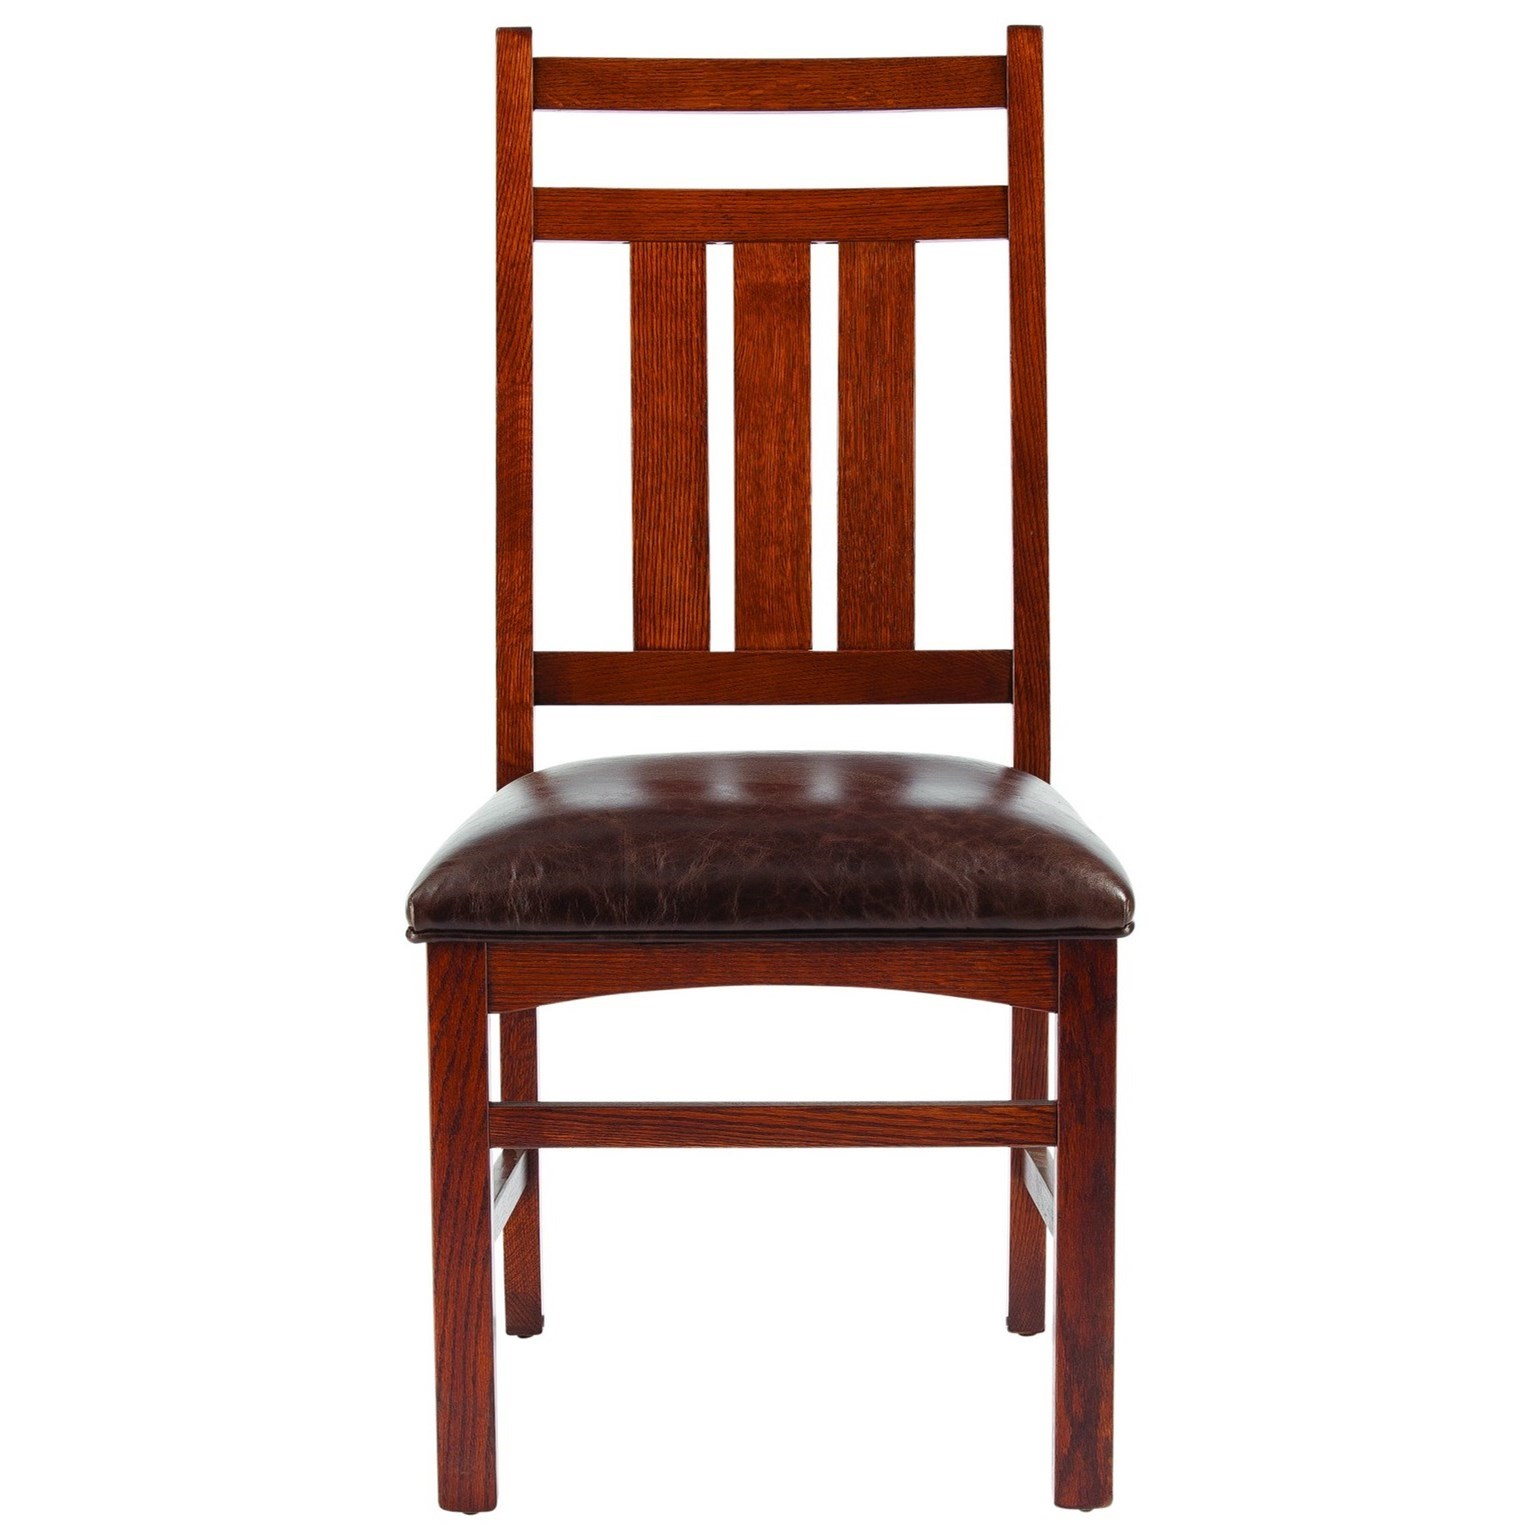 Expressions Sedona Side Chair by Palettes by Winesburg at Dinette Depot